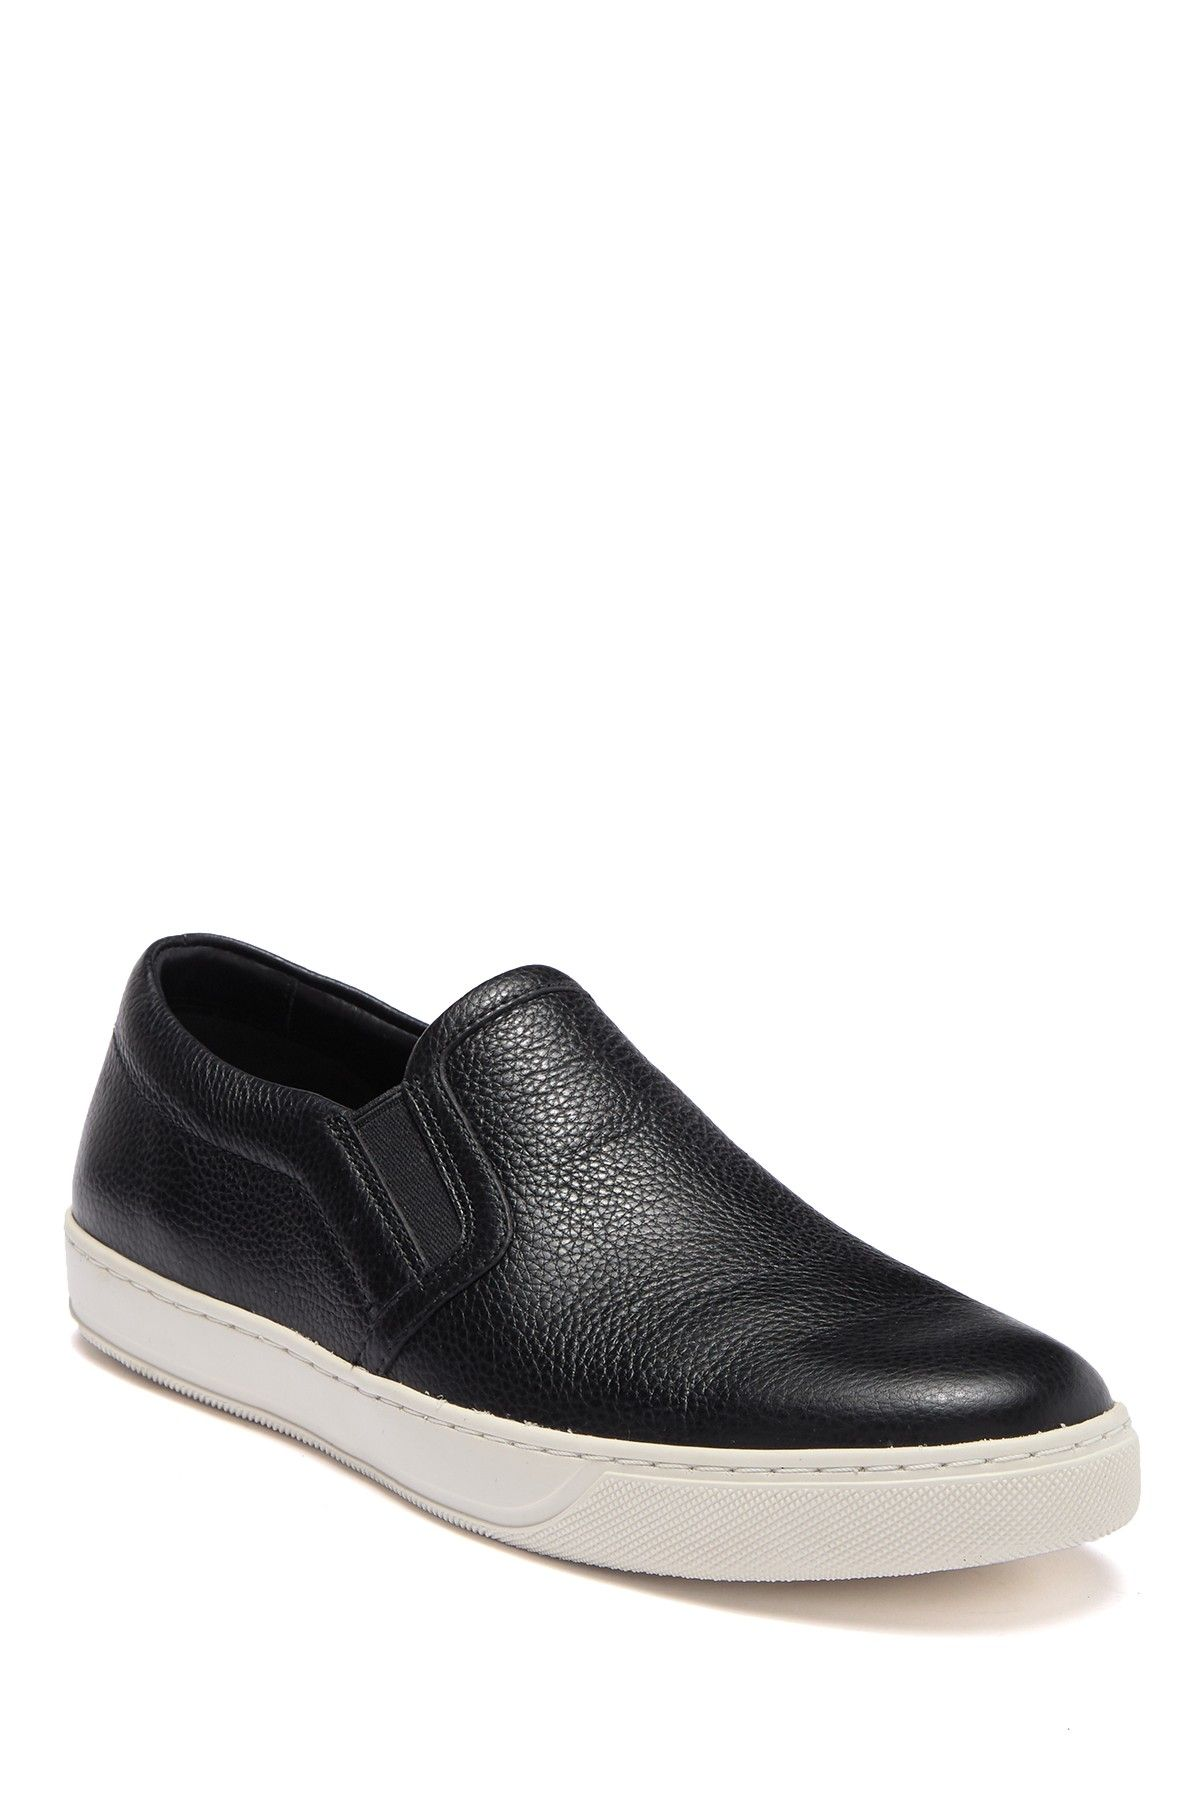 0132583527 Karl Lagerfeld Paris Cler8 Leather and Suede Loafers Women s Black 8 ...